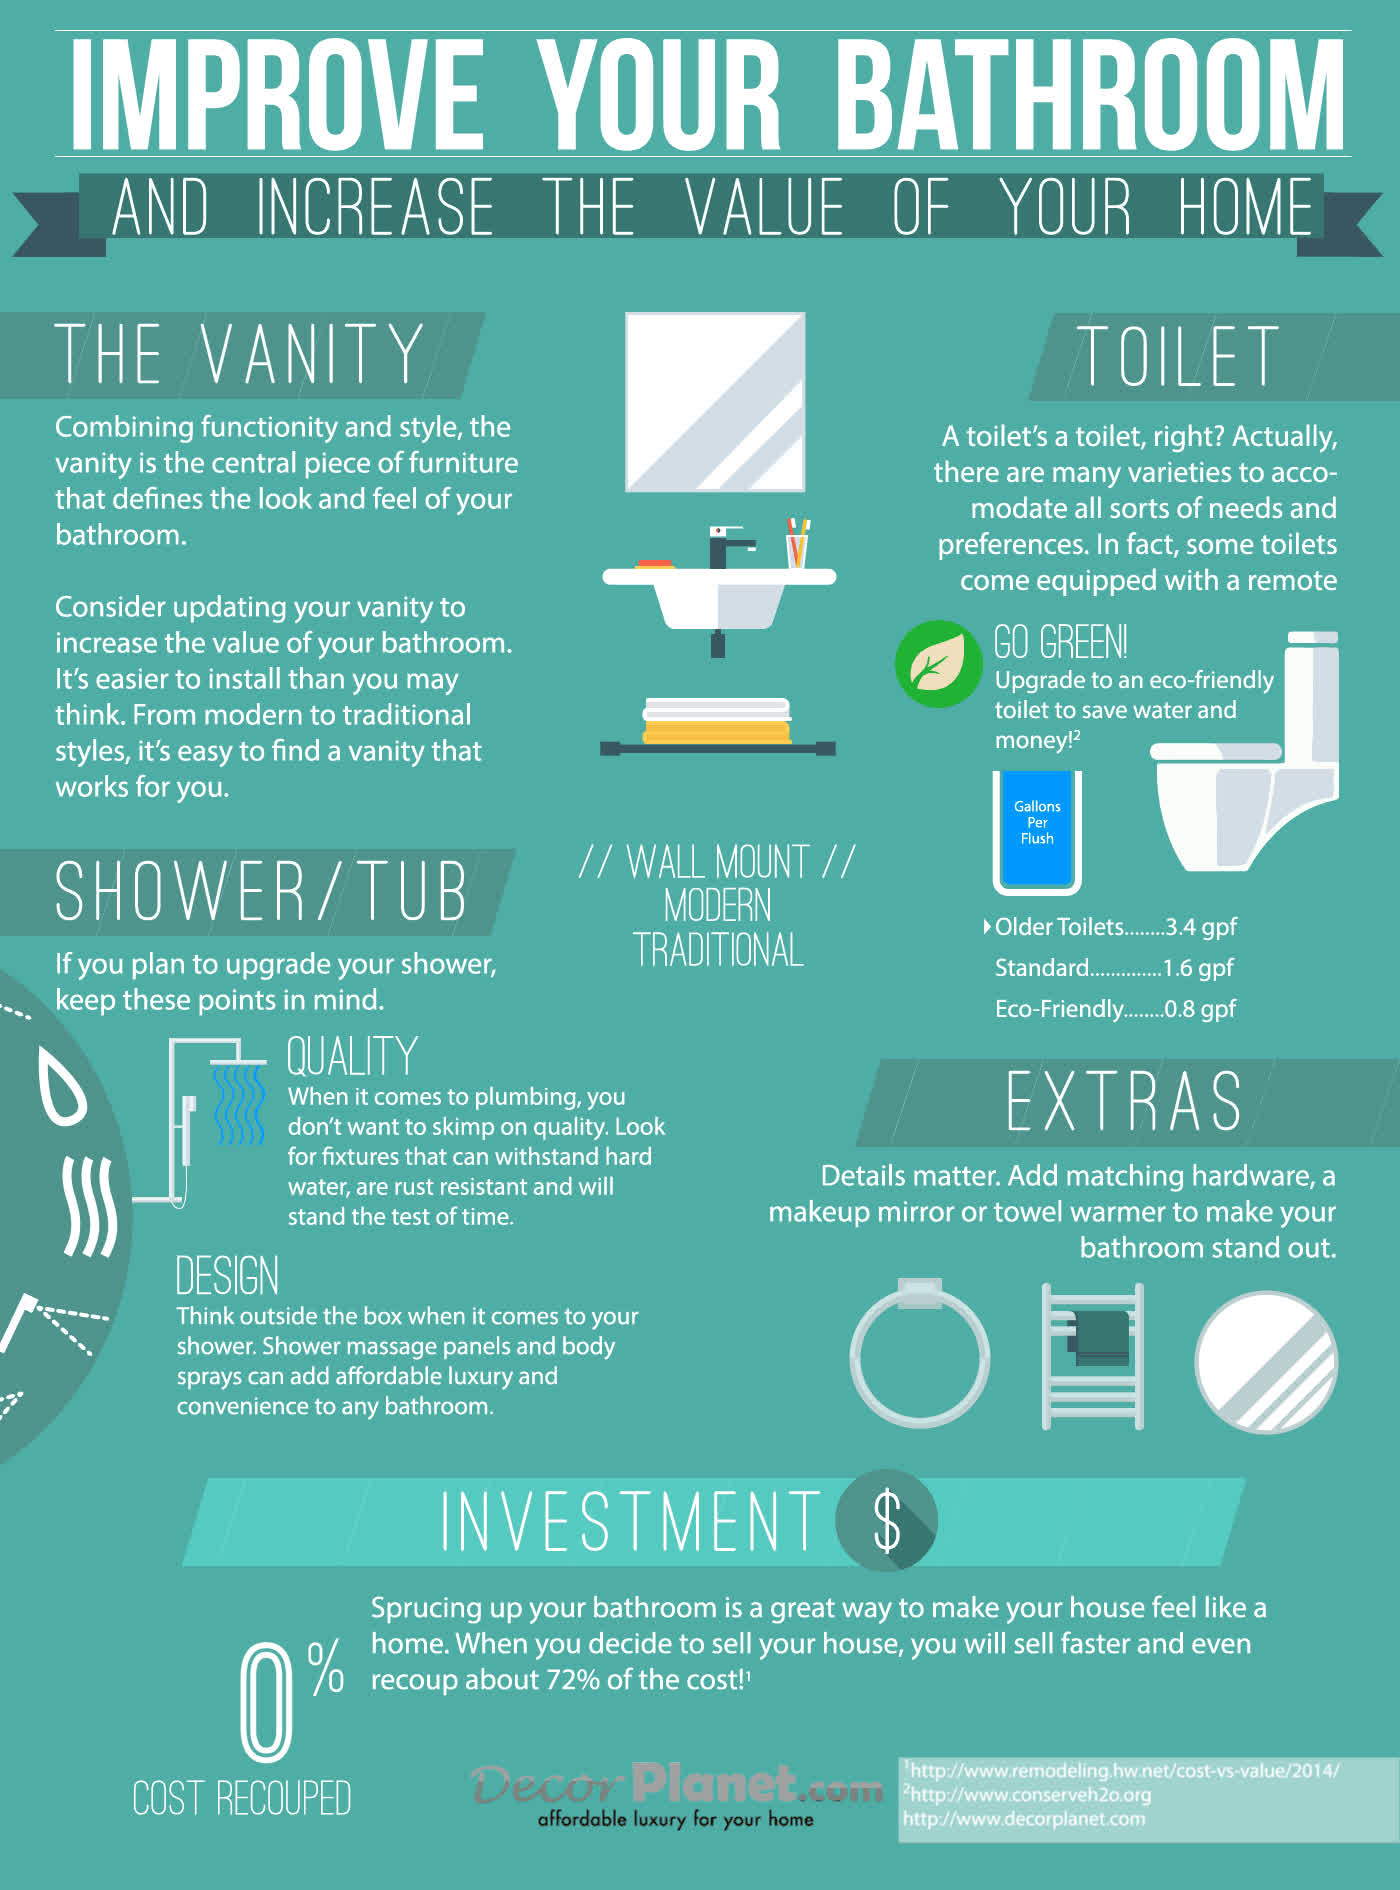 Improve Your Bathroom And Increase The Value Of Home Gif